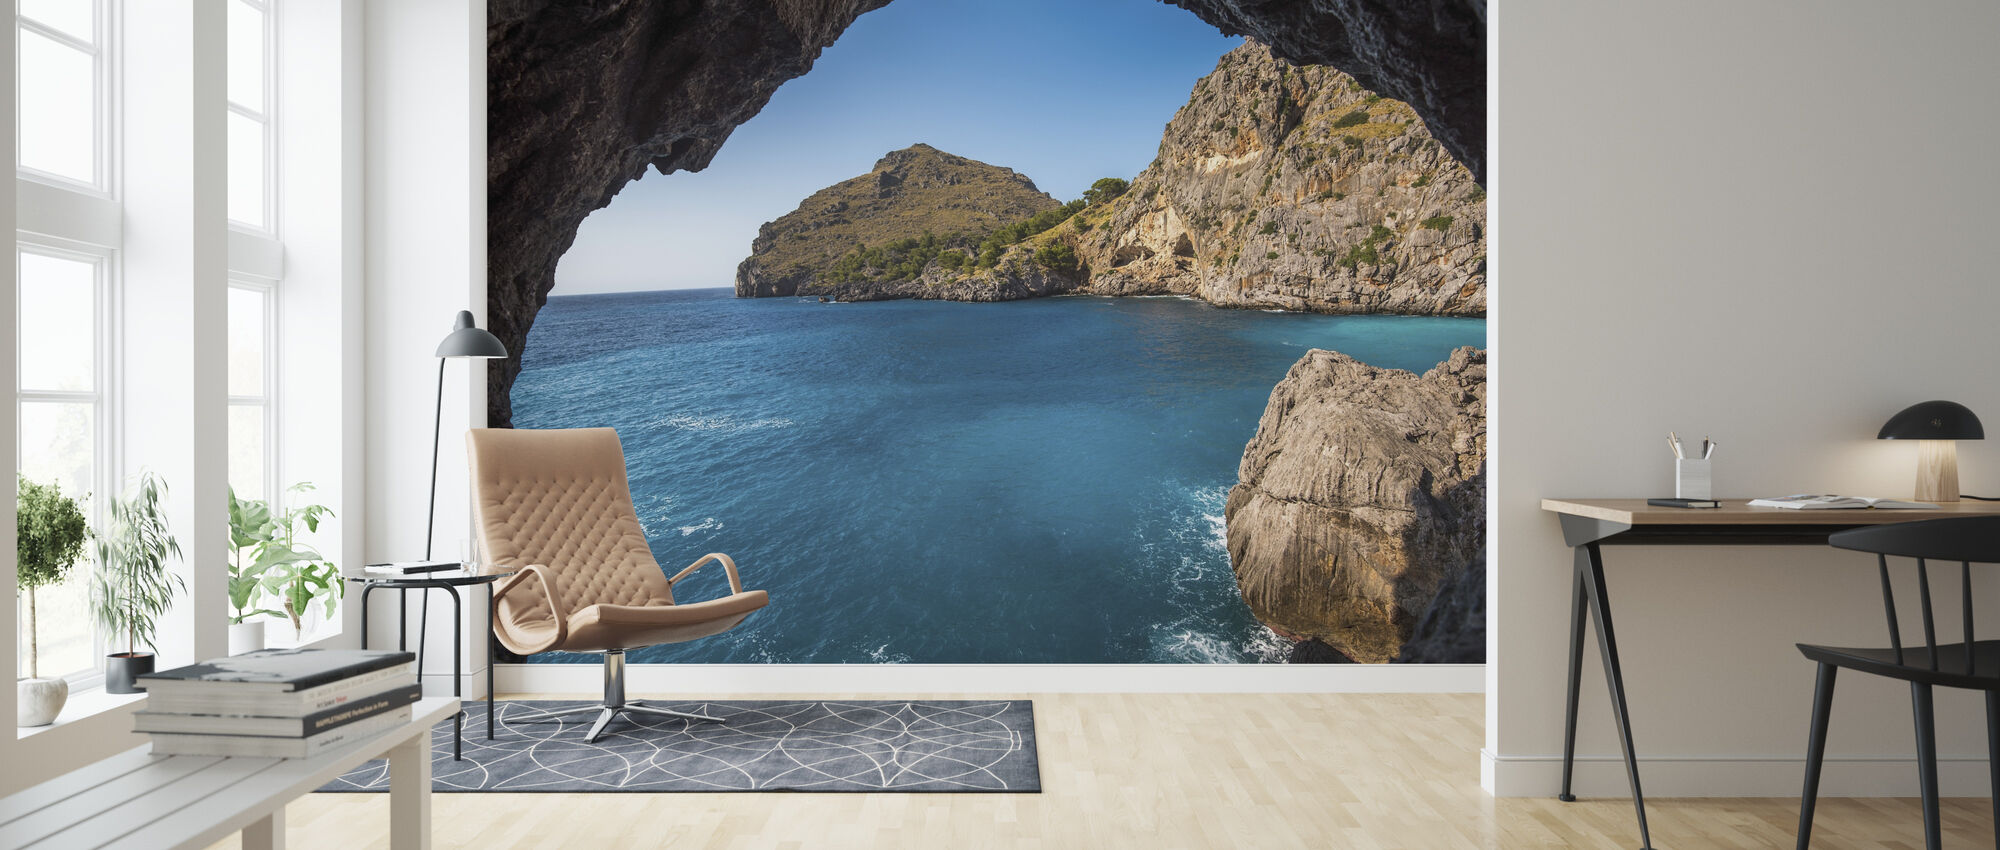 Beach Cliff - Wallpaper - Living Room